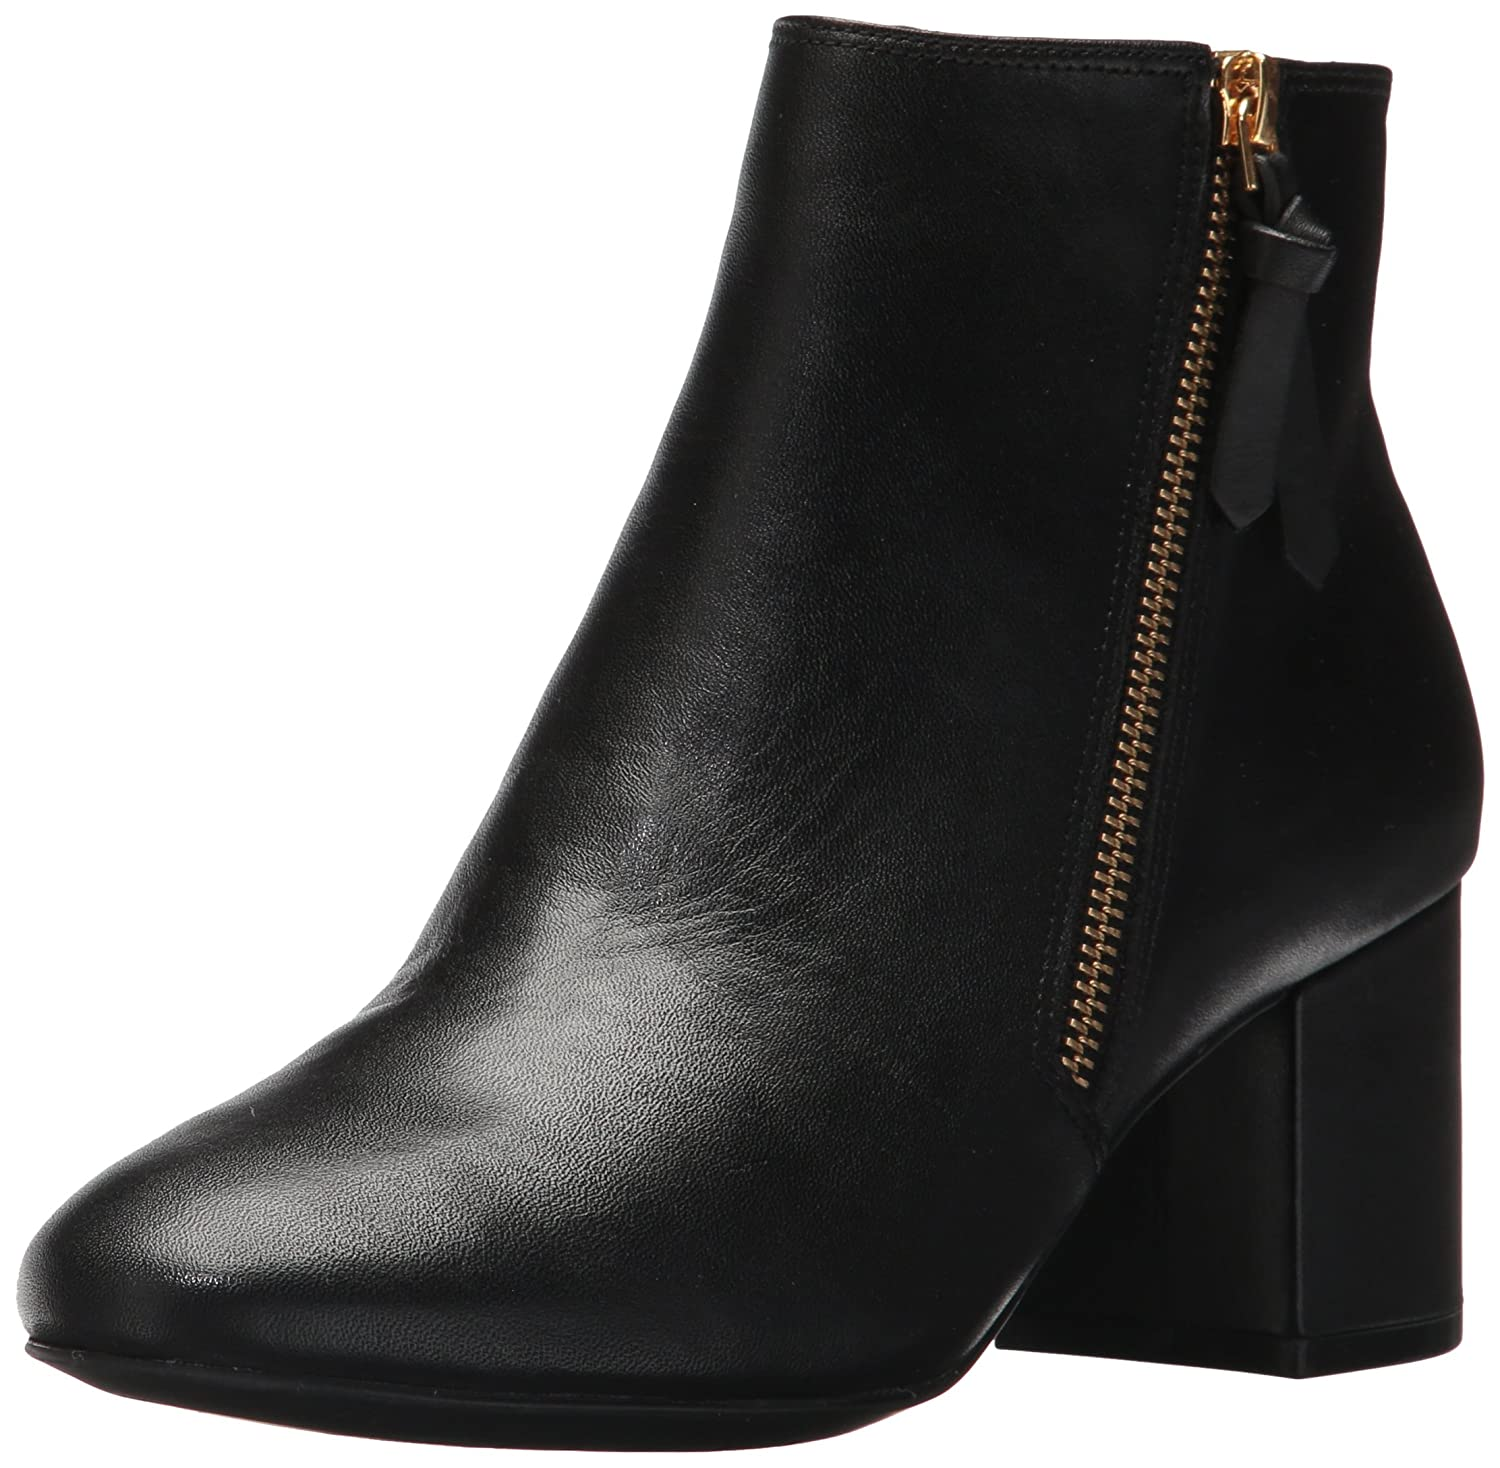 Cole Haan Women's Saylor Grand Bootie II Ankle Boot B01N5UZ3FY 10.5 B(M) US|Black Leather